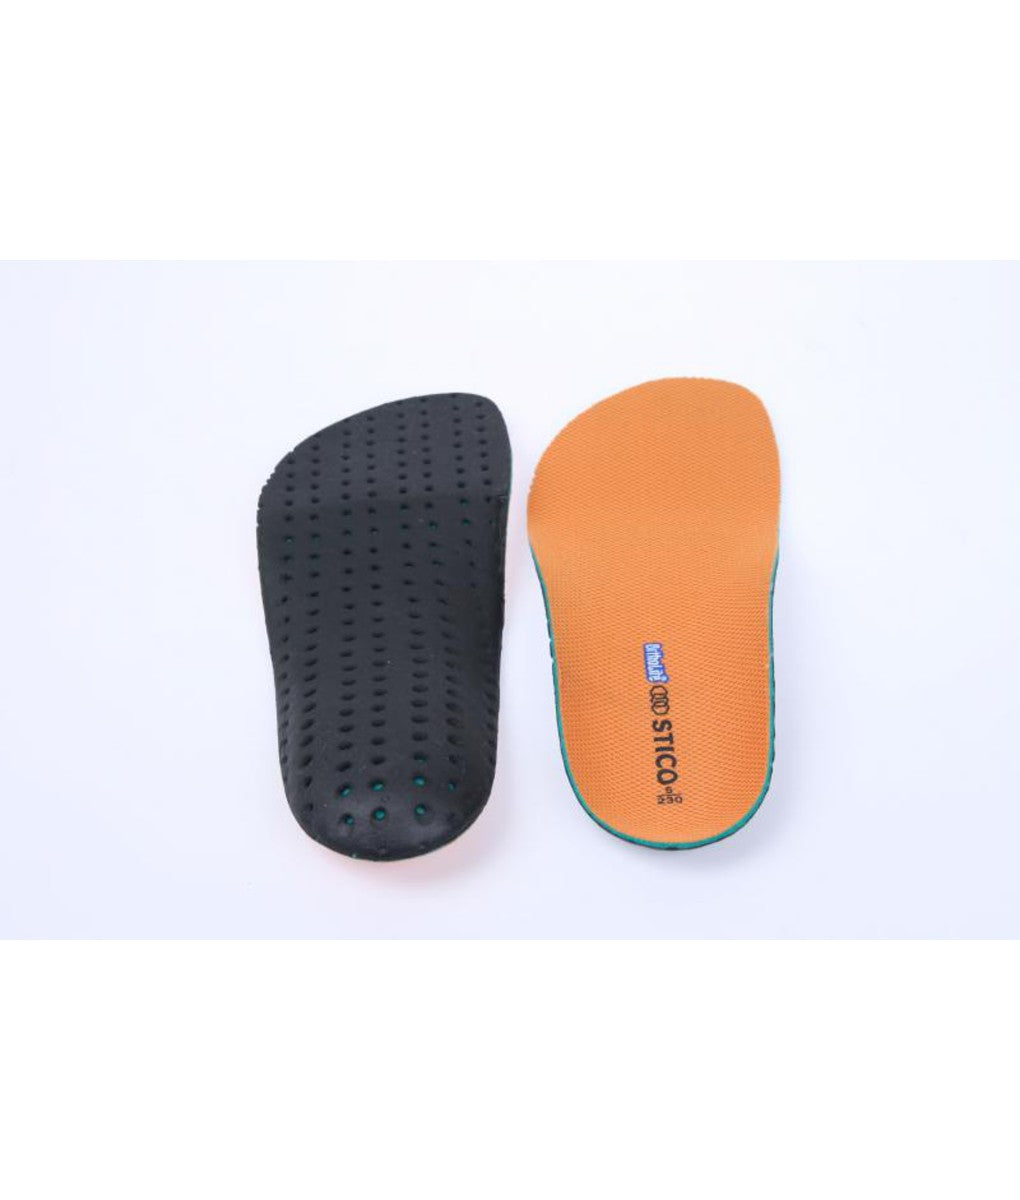 STICO Insoles